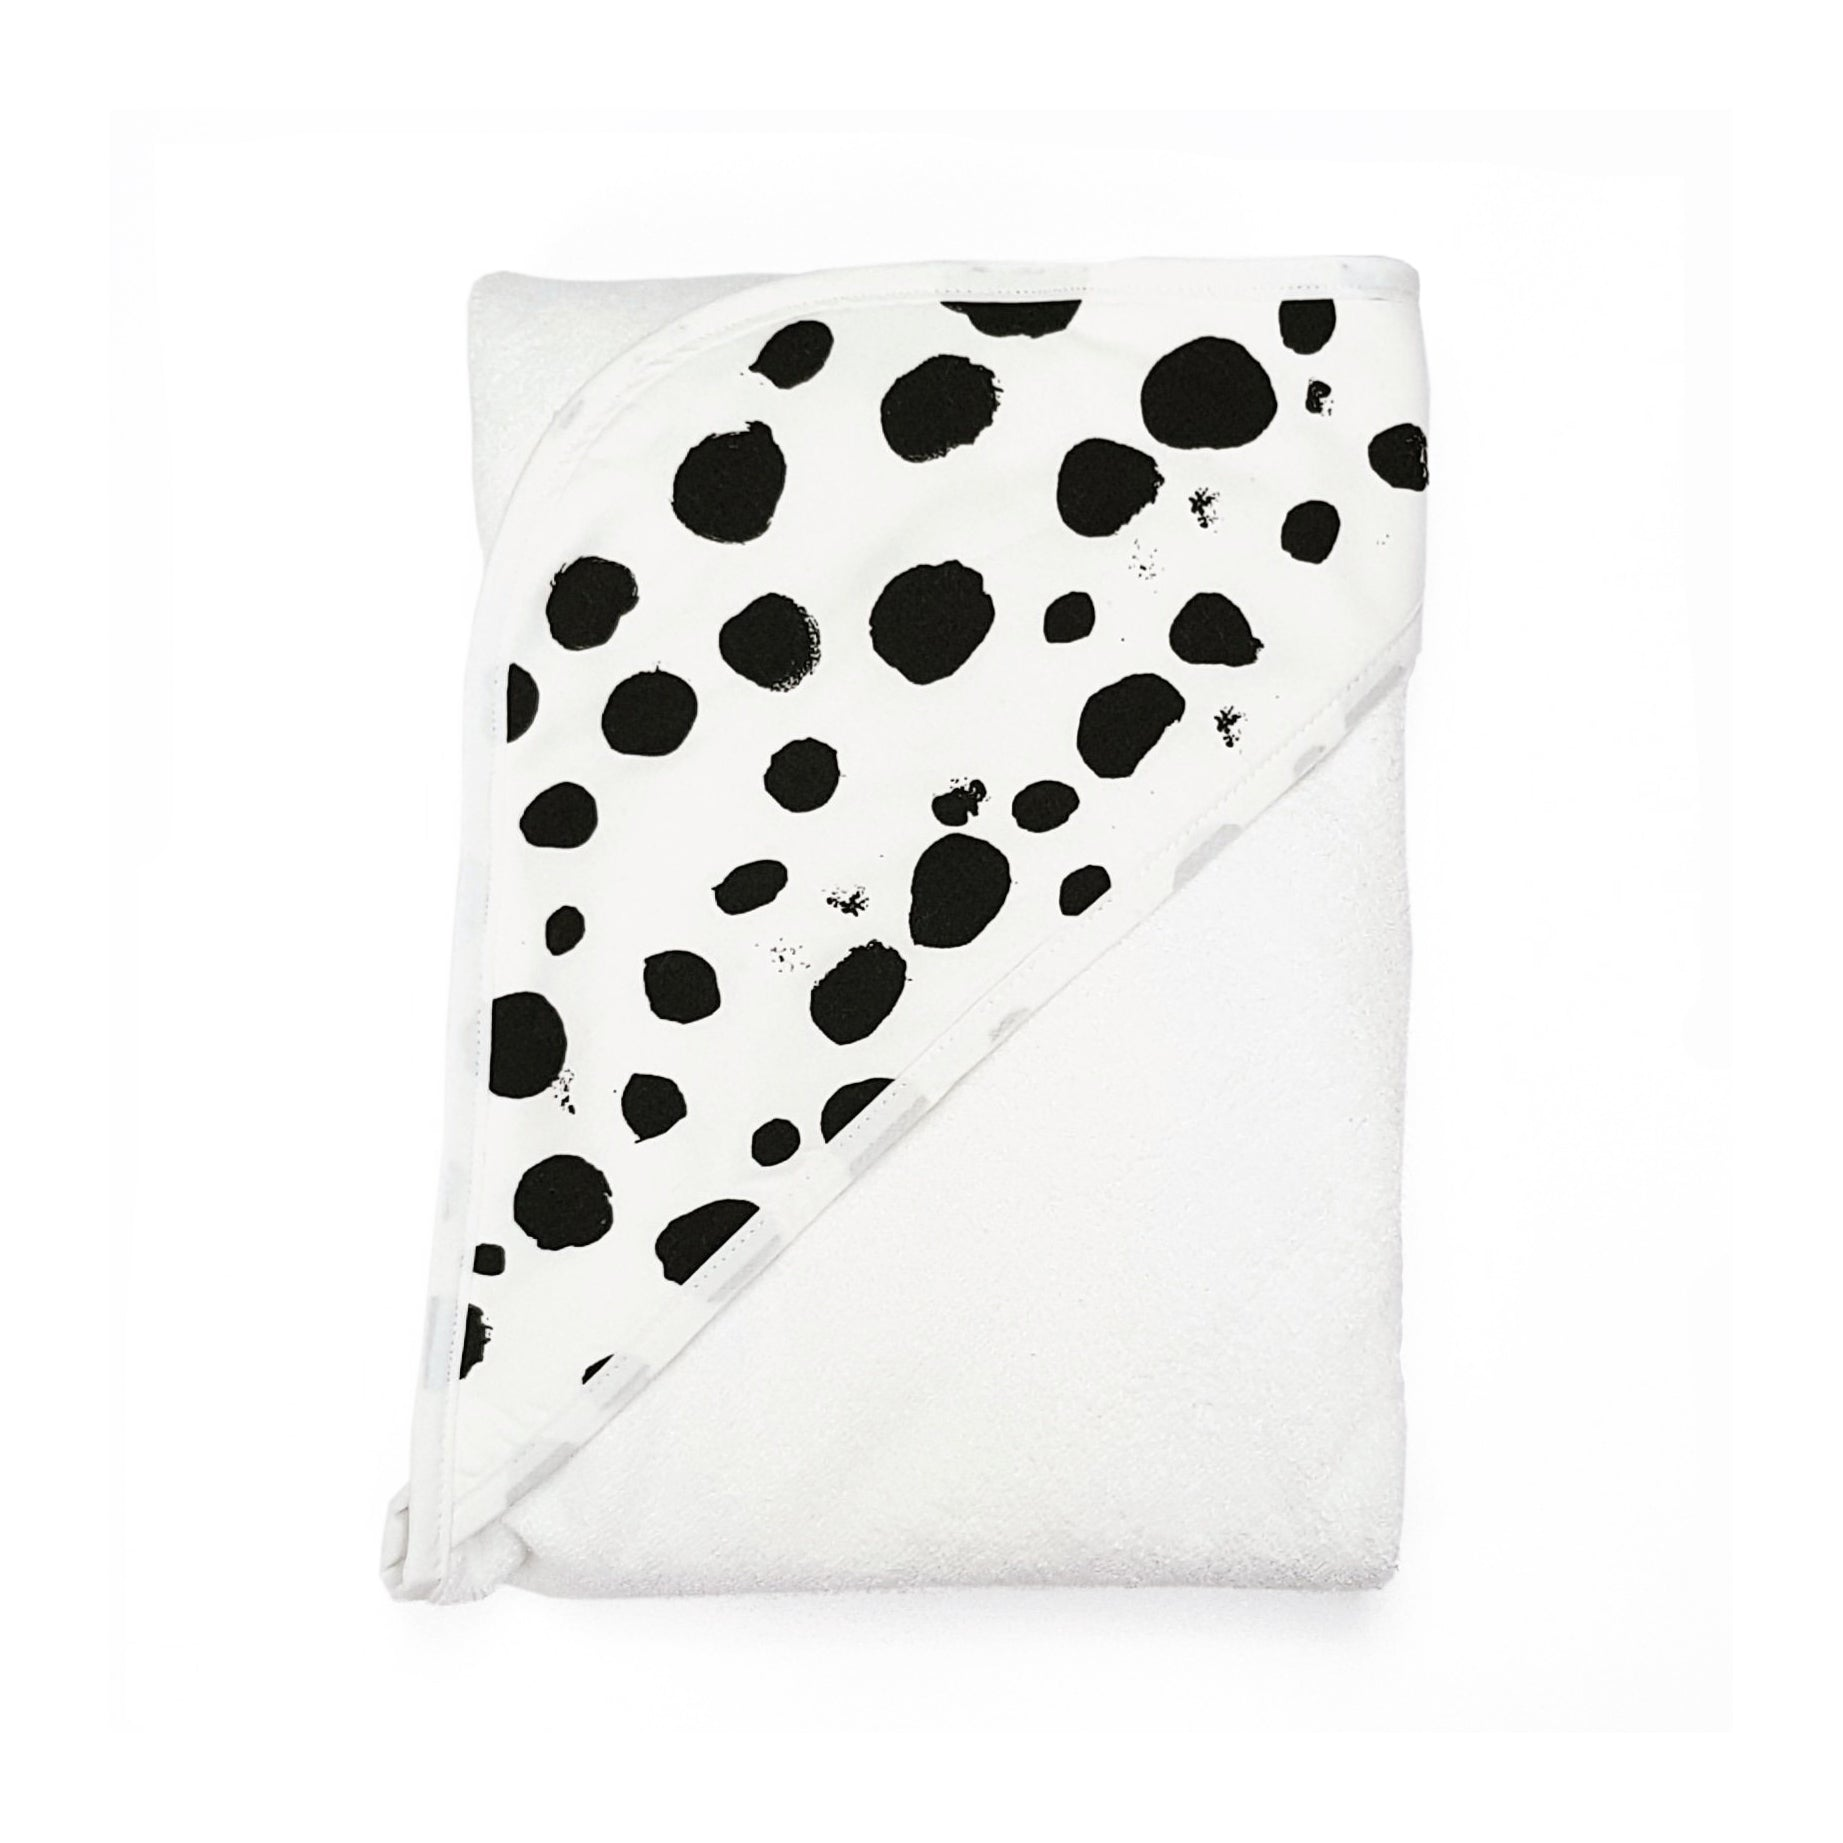 Baby Jumpie x Towelling Stories: Hooded Toddler Bath Towel SPOTTY